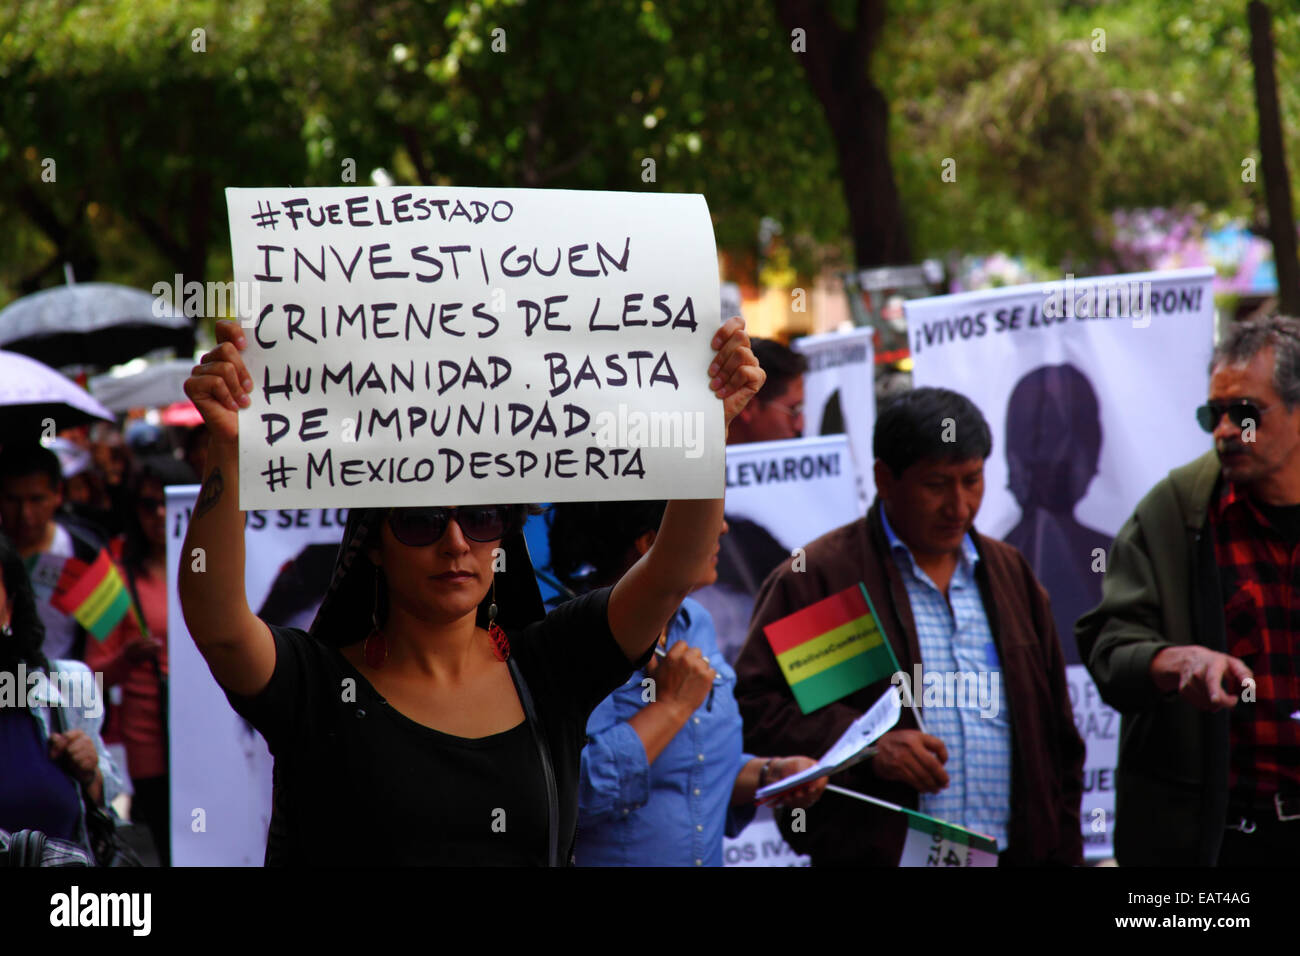 La Paz, Bolivia. 20th November, 2014. A protester holds a placard demanding an investigation into crimes against Stock Photo